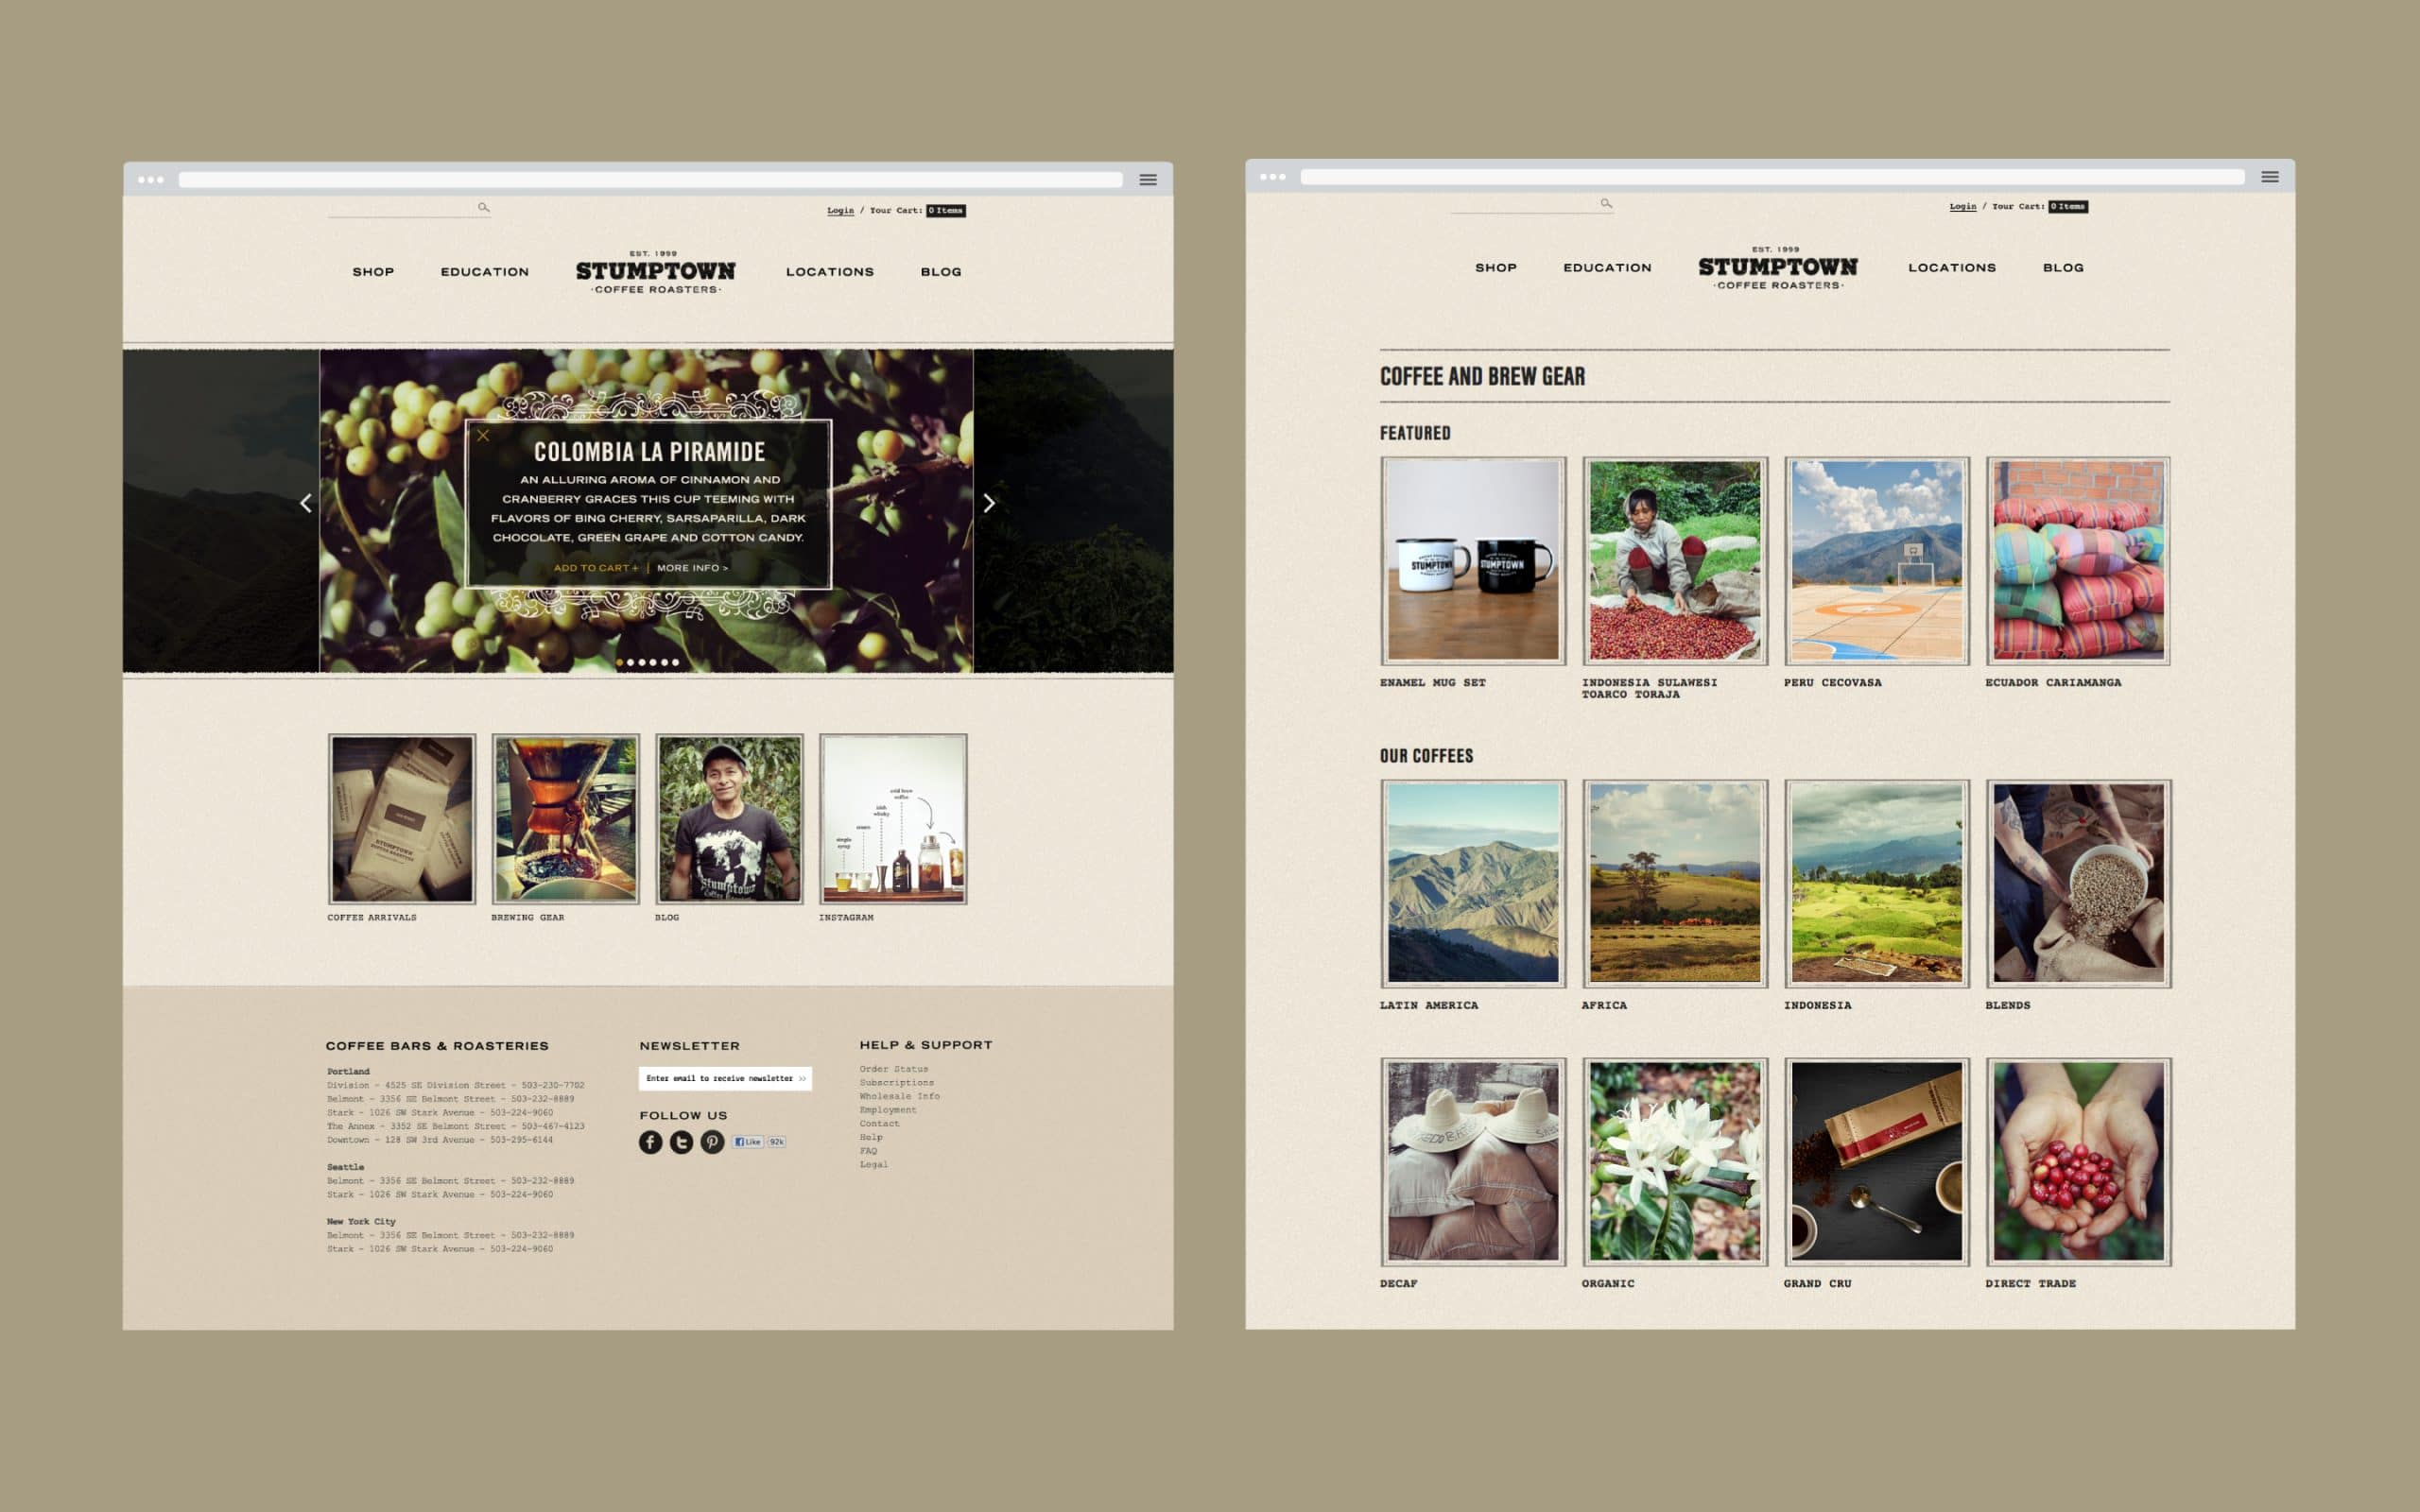 Stumptown Homepage on Desktop